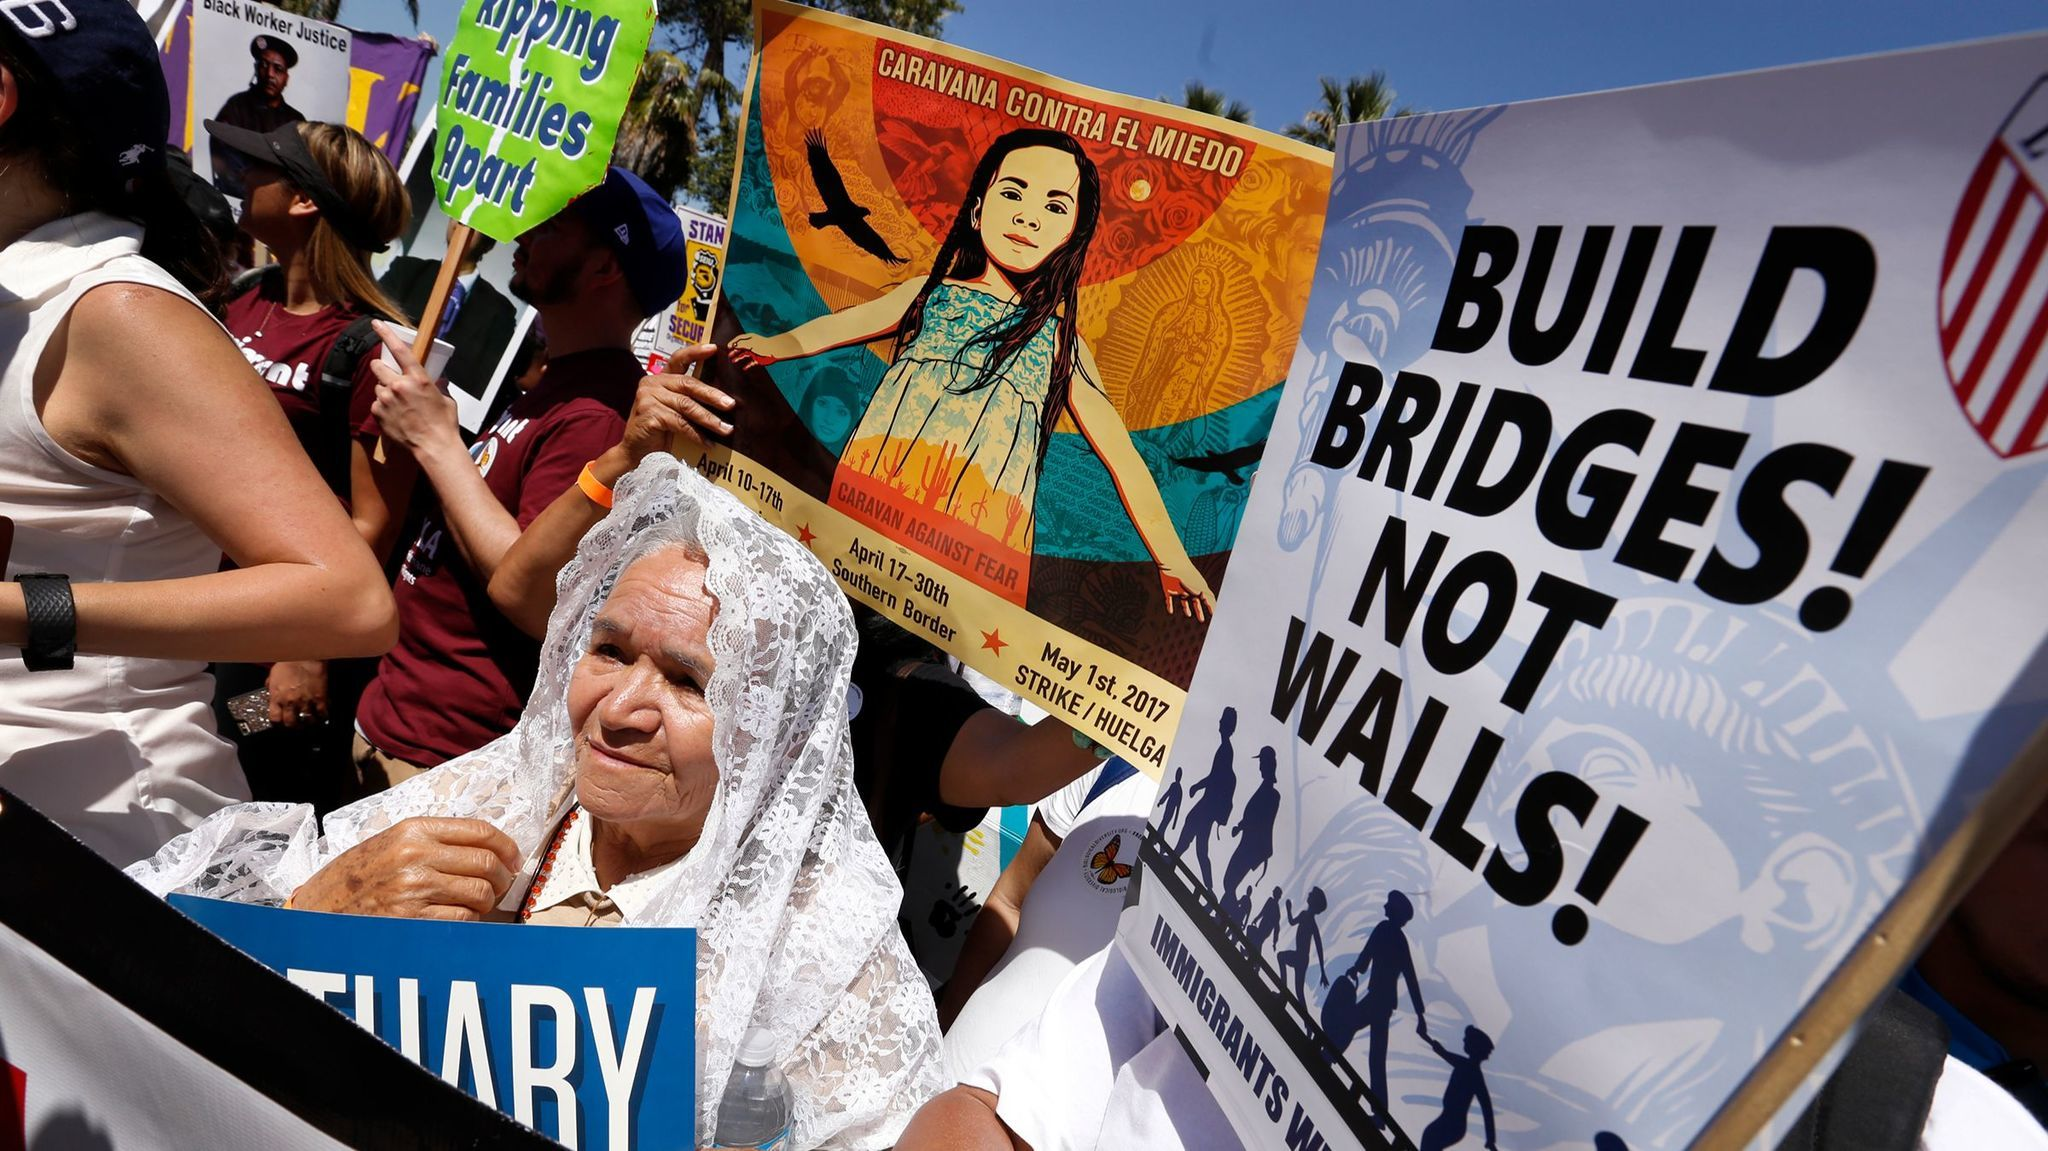 Bertha Ramirez, 72, of Fresno, came to march with thousands against President Trump's vowed crackdown on illegal immigration.